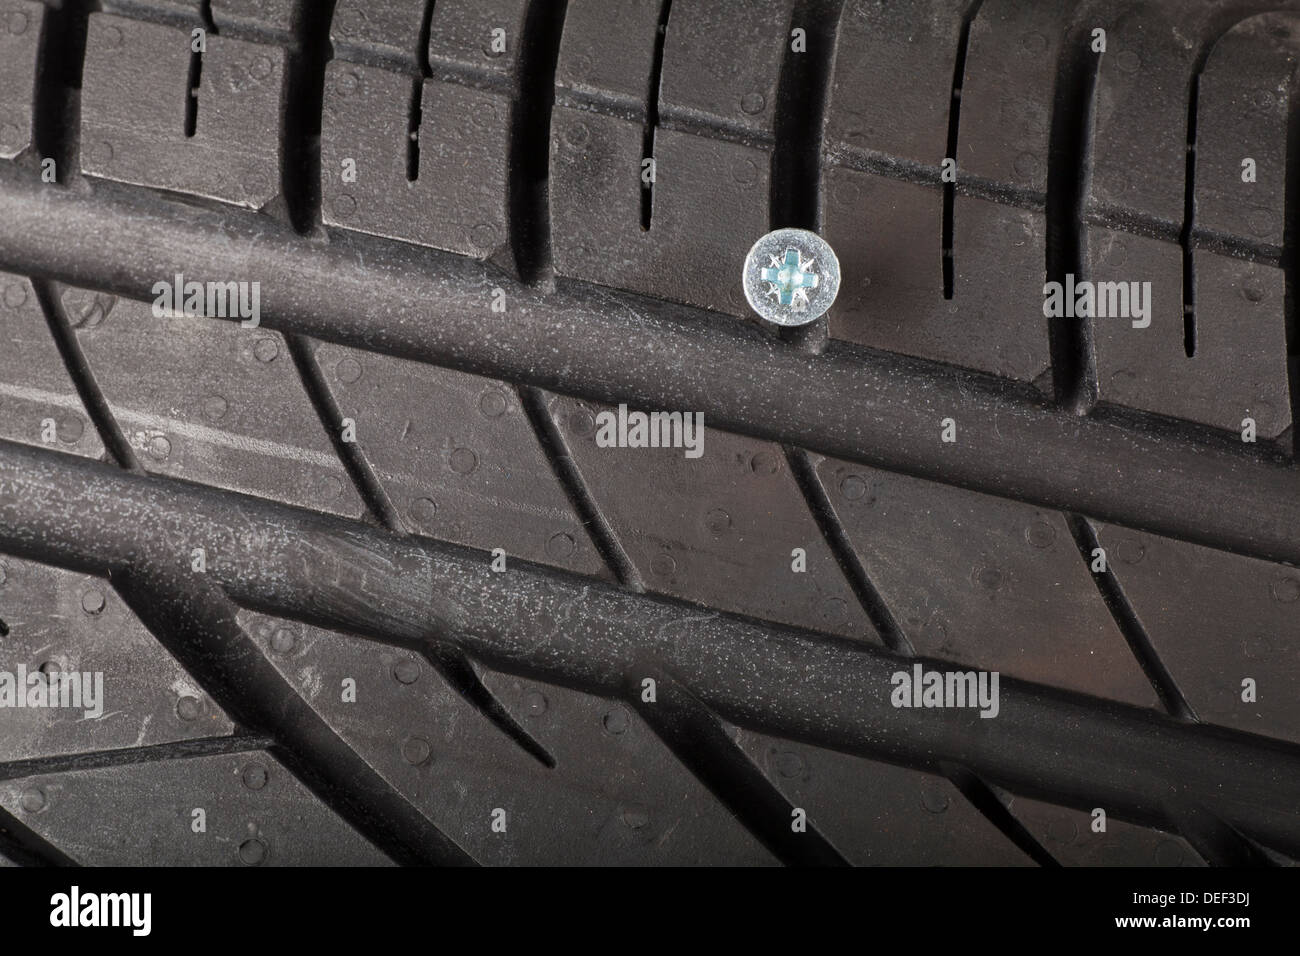 Nail, Screw in a brand new tyre, puncture - Stock Image